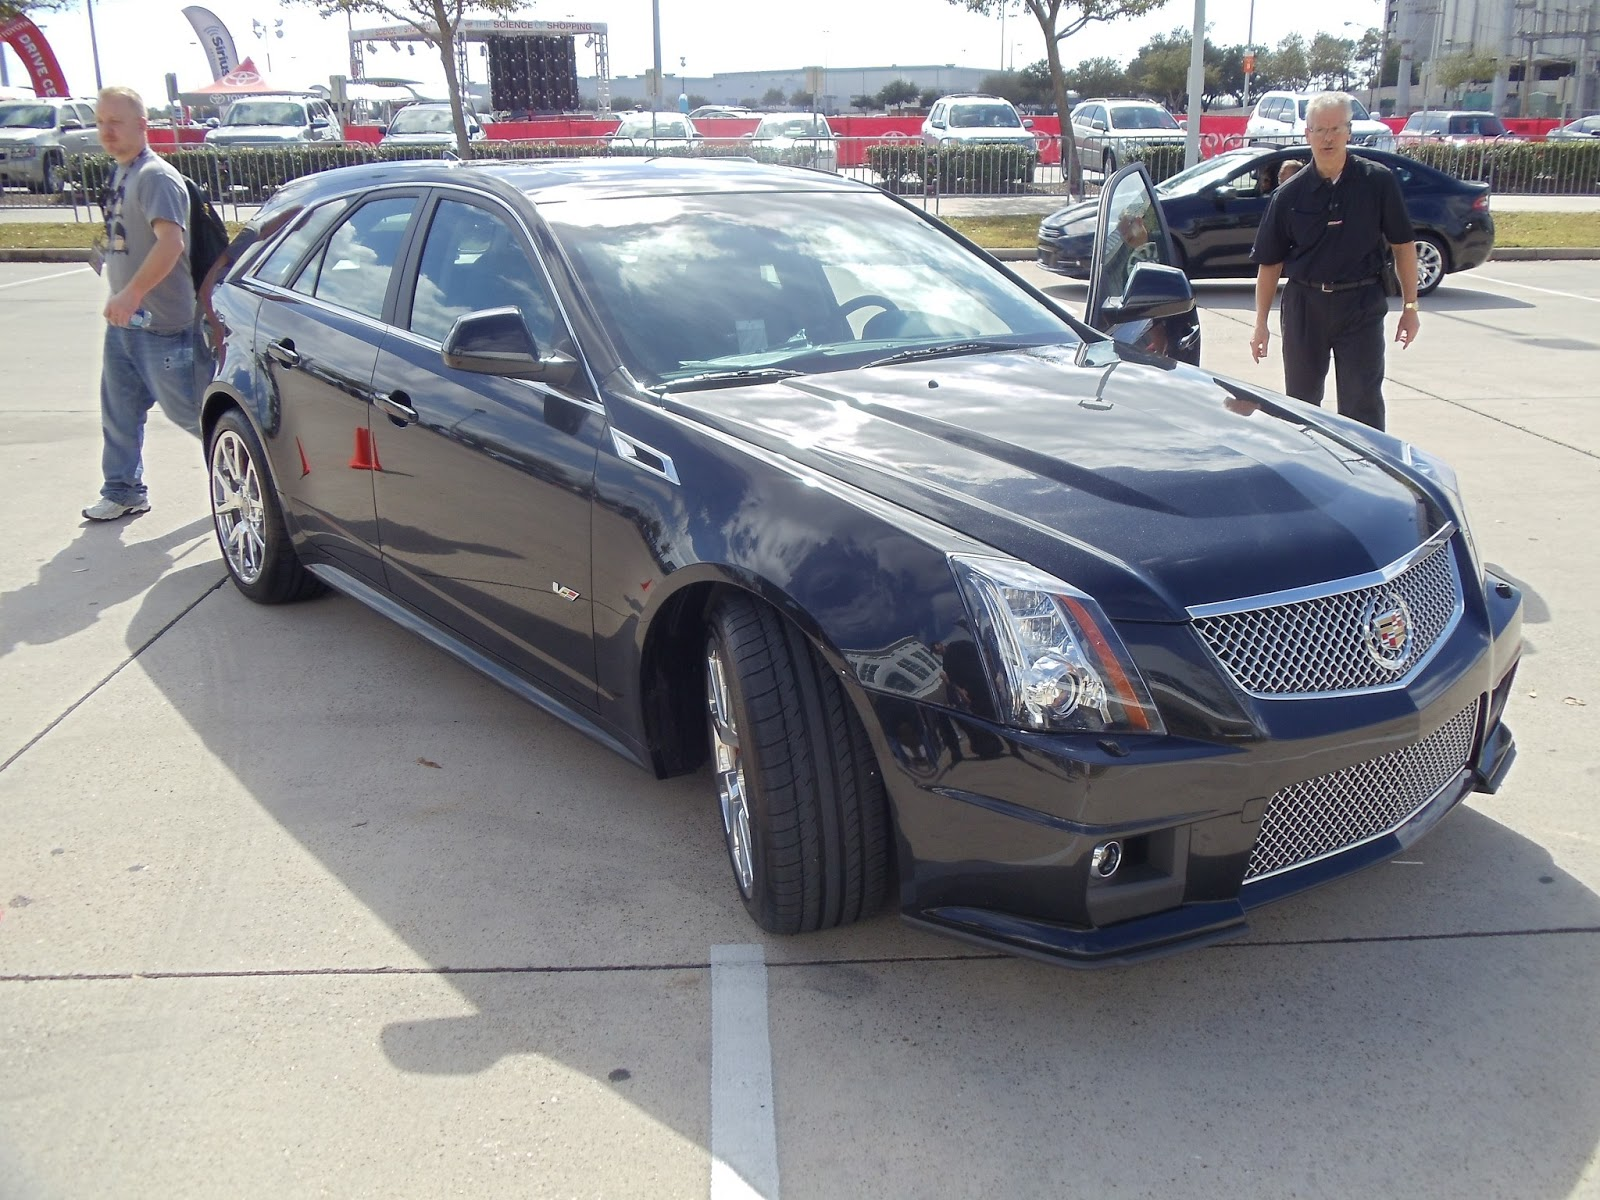 cts v 2013 for sale cadillac cts v 2013 for sale cadillac cts v